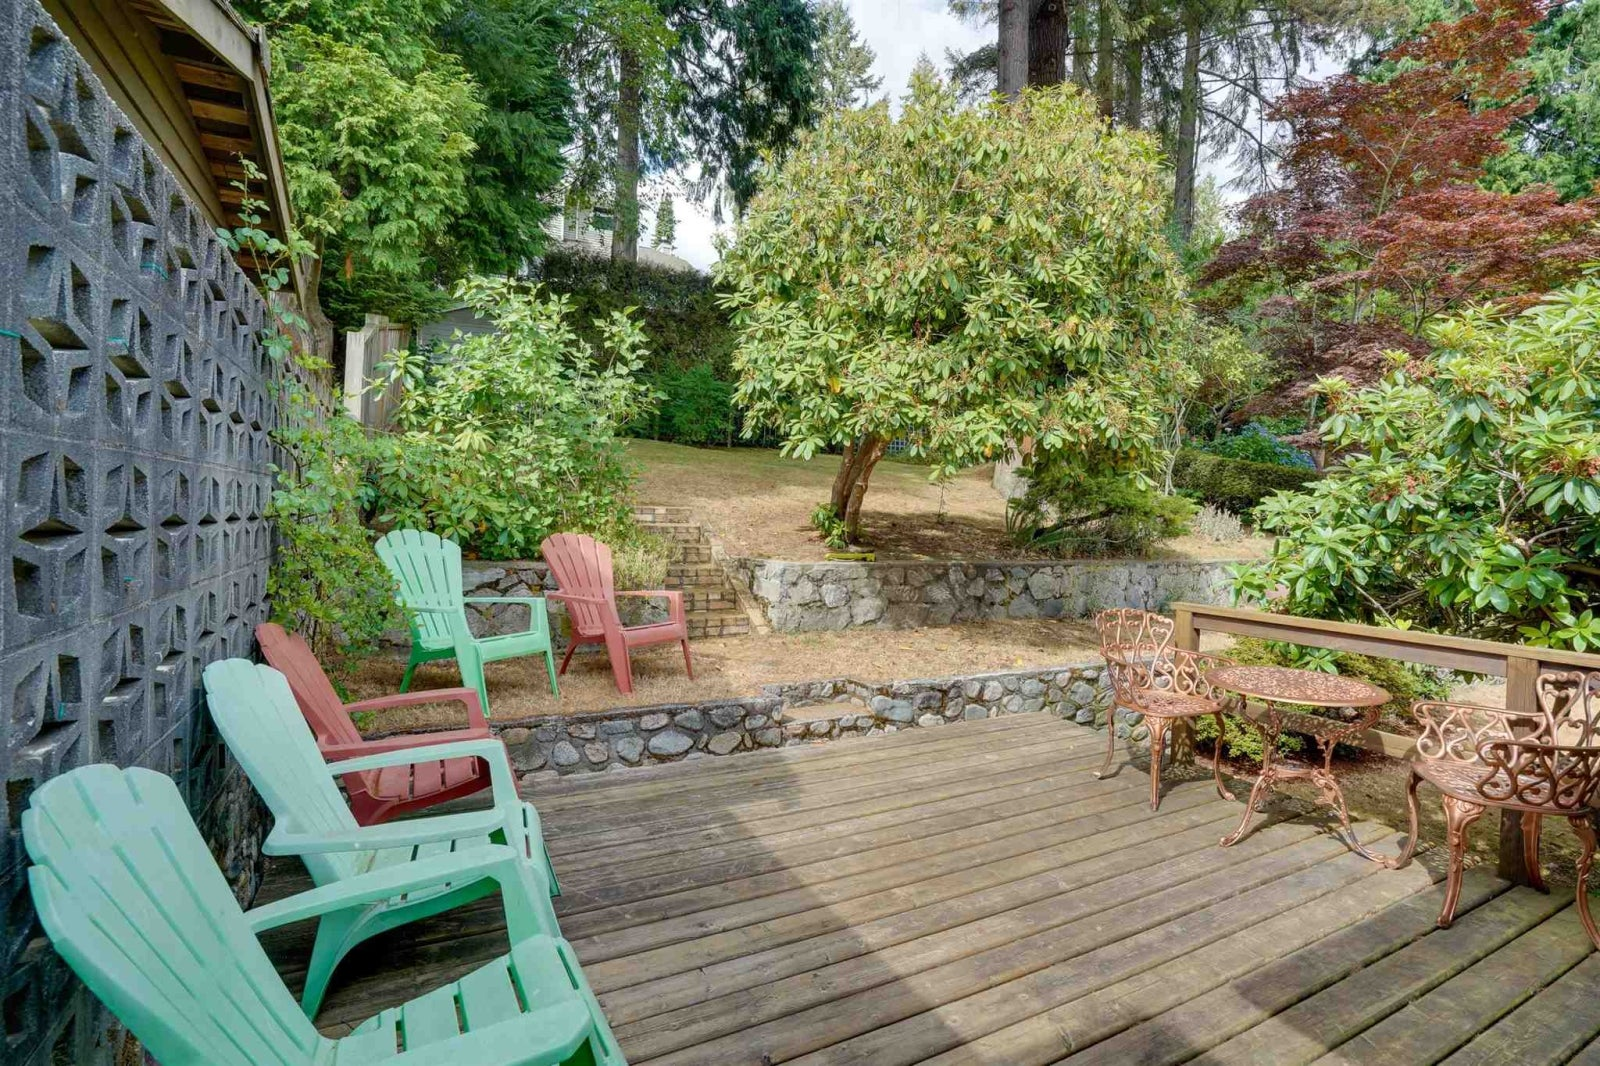 1044 W 17TH STREET - Pemberton Heights House/Single Family for sale, 3 Bedrooms (R2602389) #2